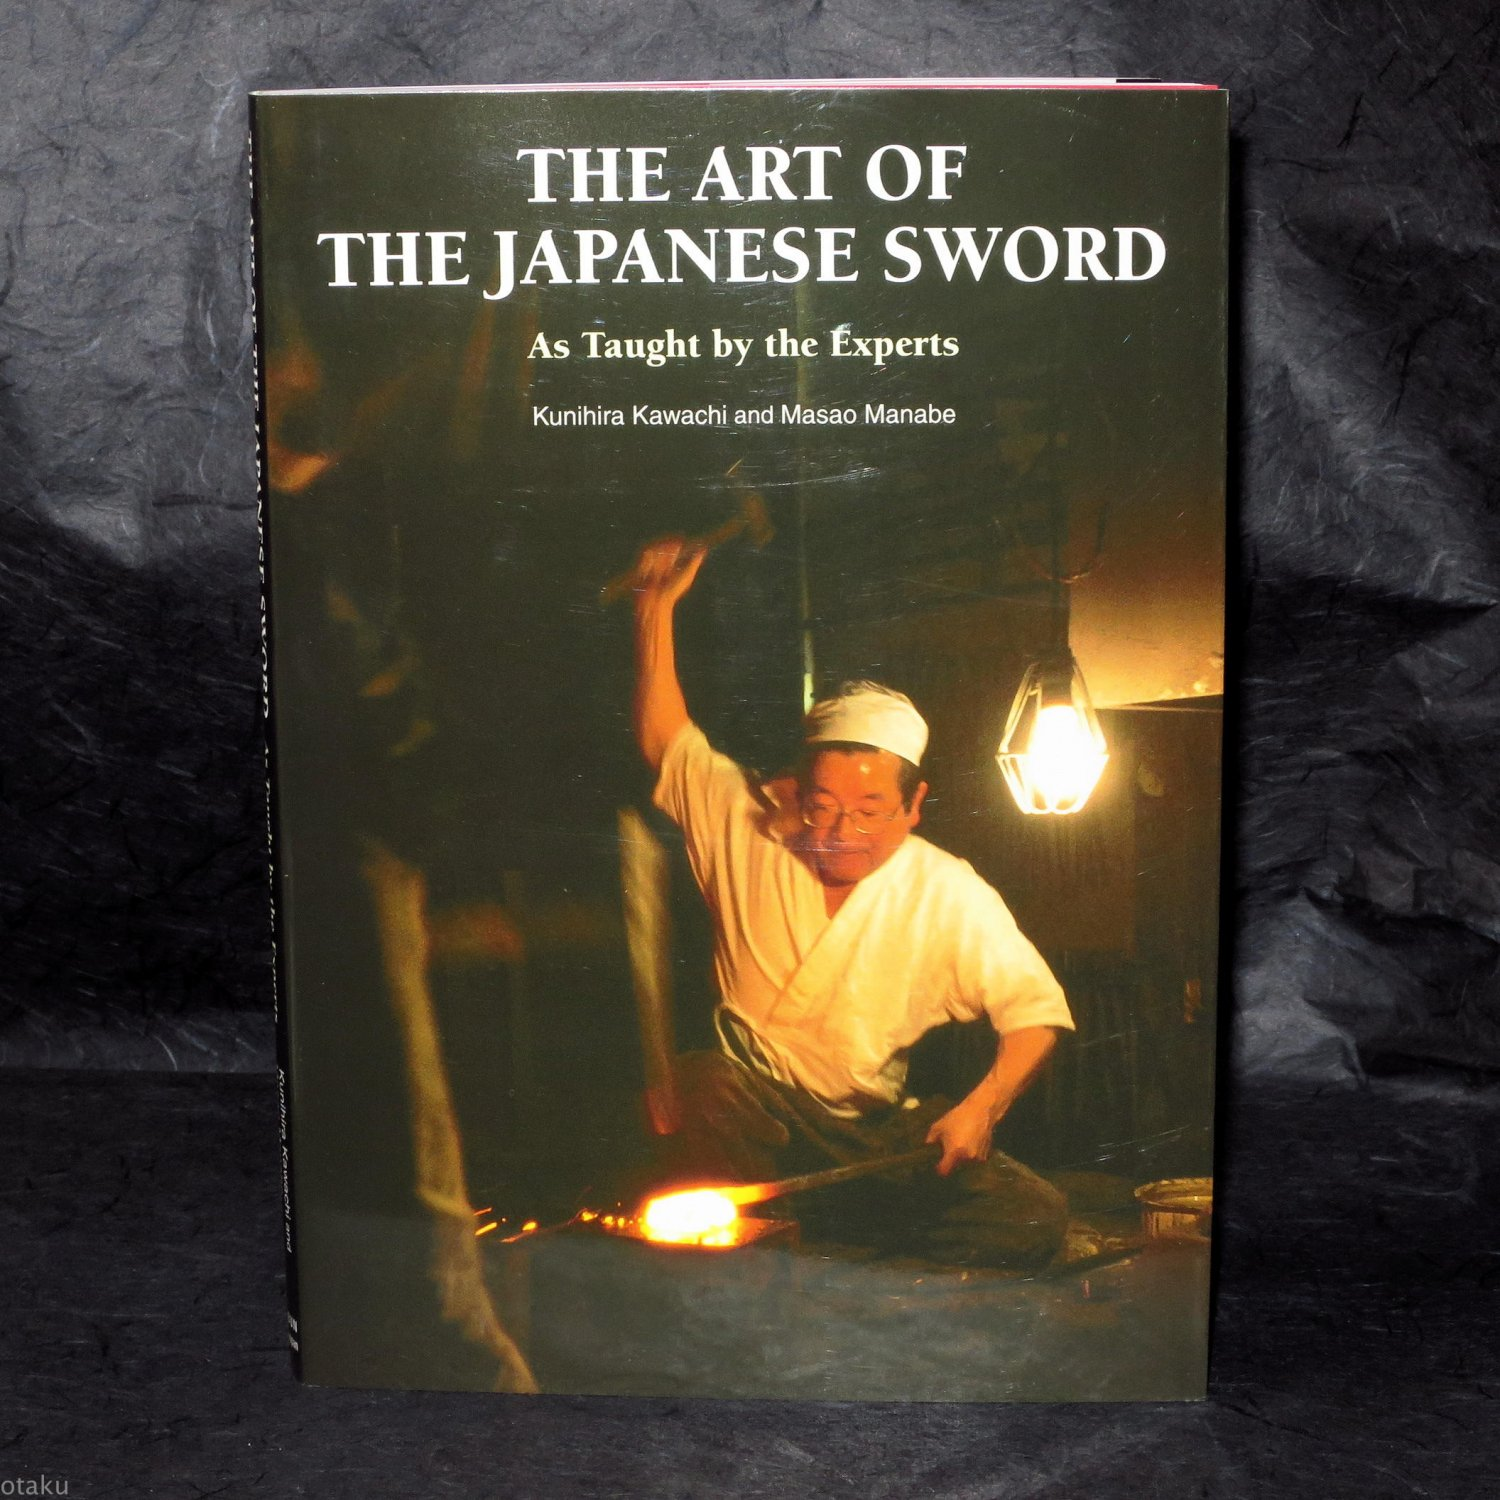 The Art Of The Japanese Sword Japan Serious Expert Guide Photo Book NEW